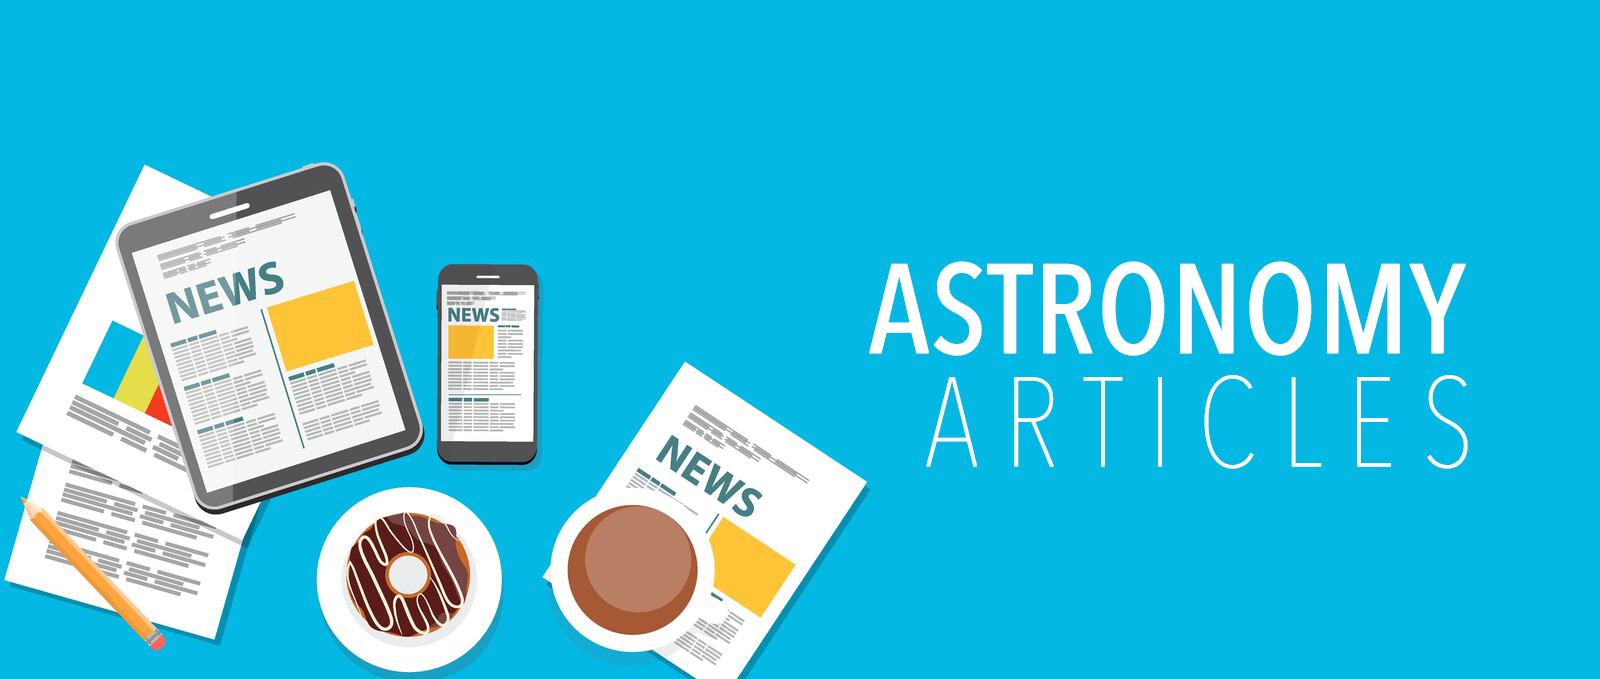 Astronomy Articles